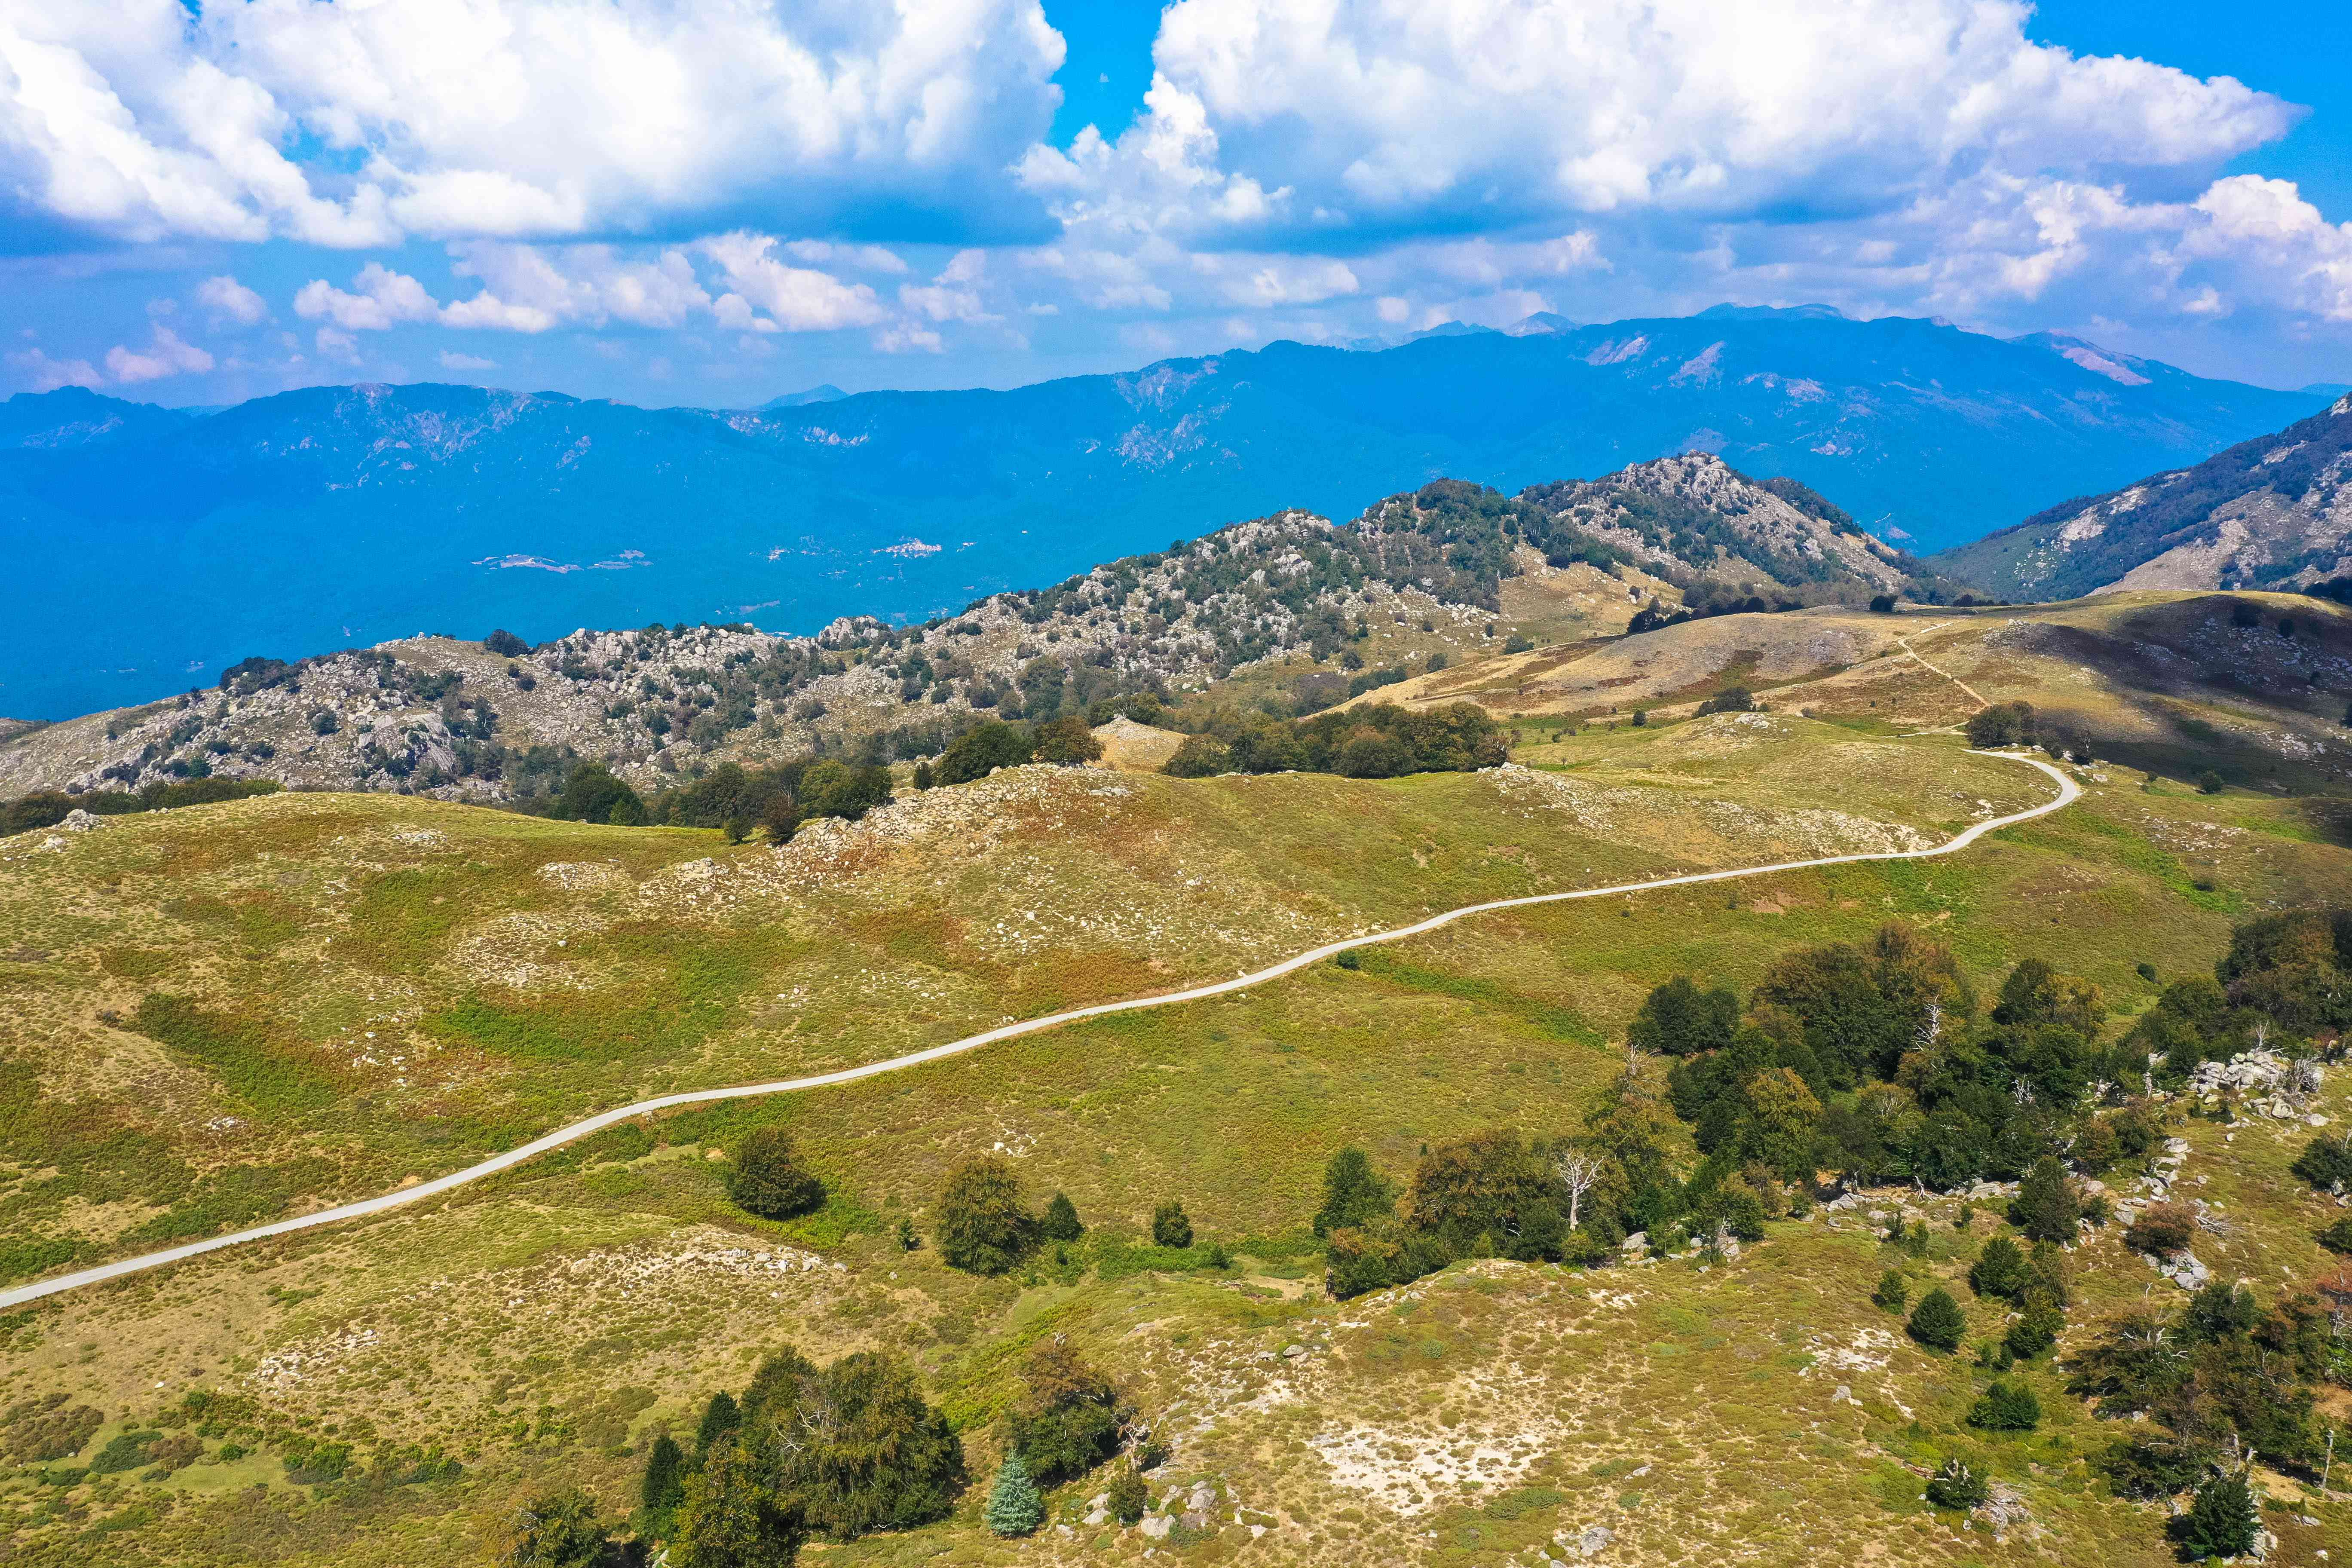 Panoramic view of the natural landscape and hiking area of the GR20 route from the Plateau of Coscione, Corsica, France